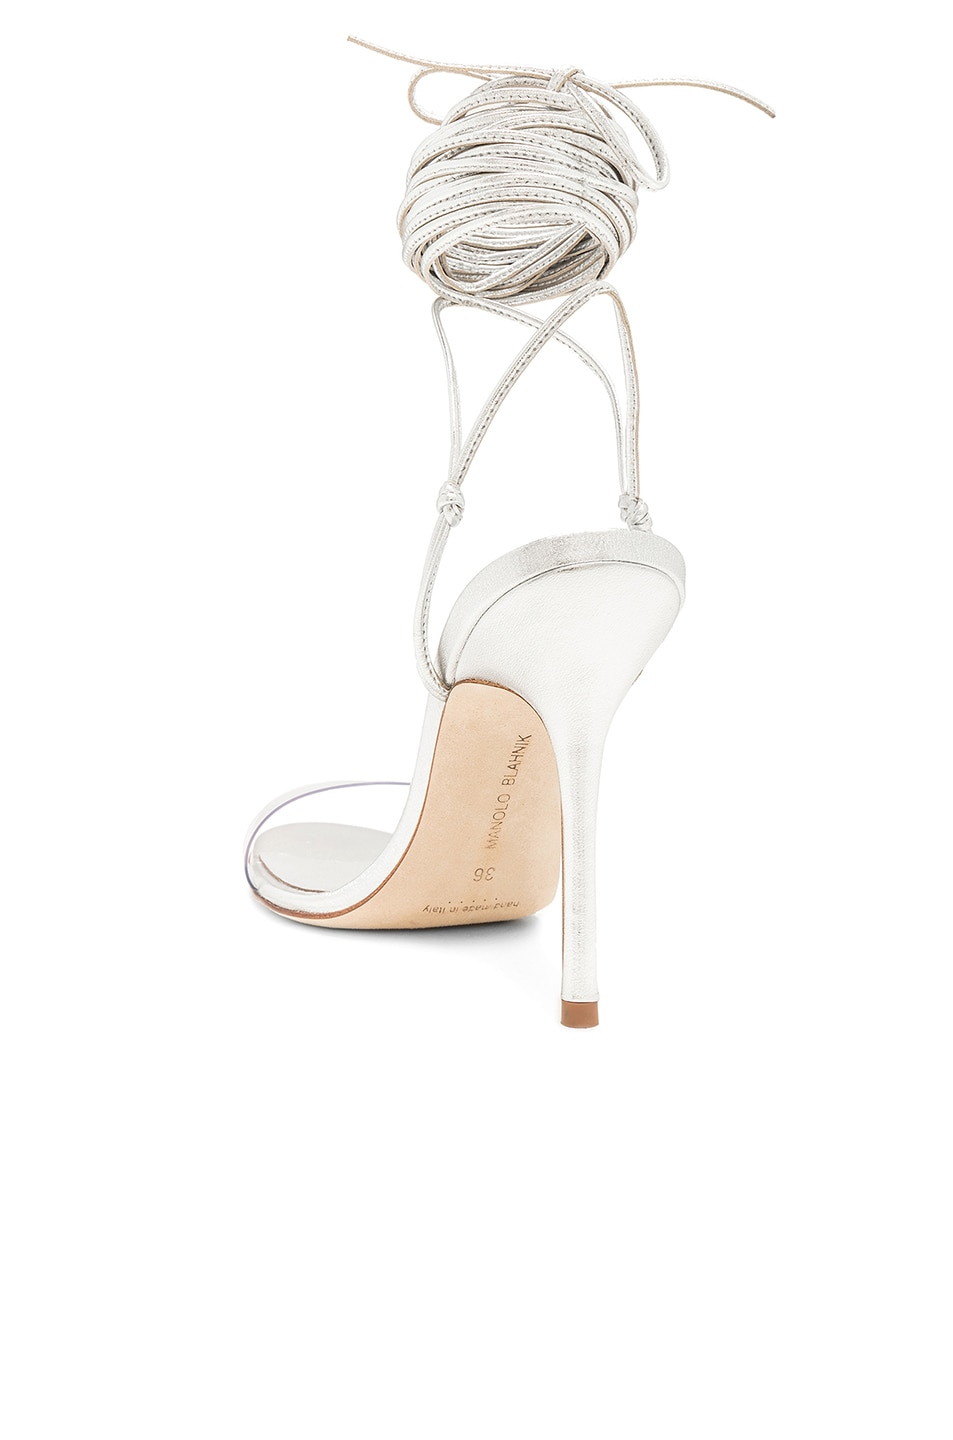 Image 3 of Manolo Blahnik Priscestro 105 Heel in Silver & Clear